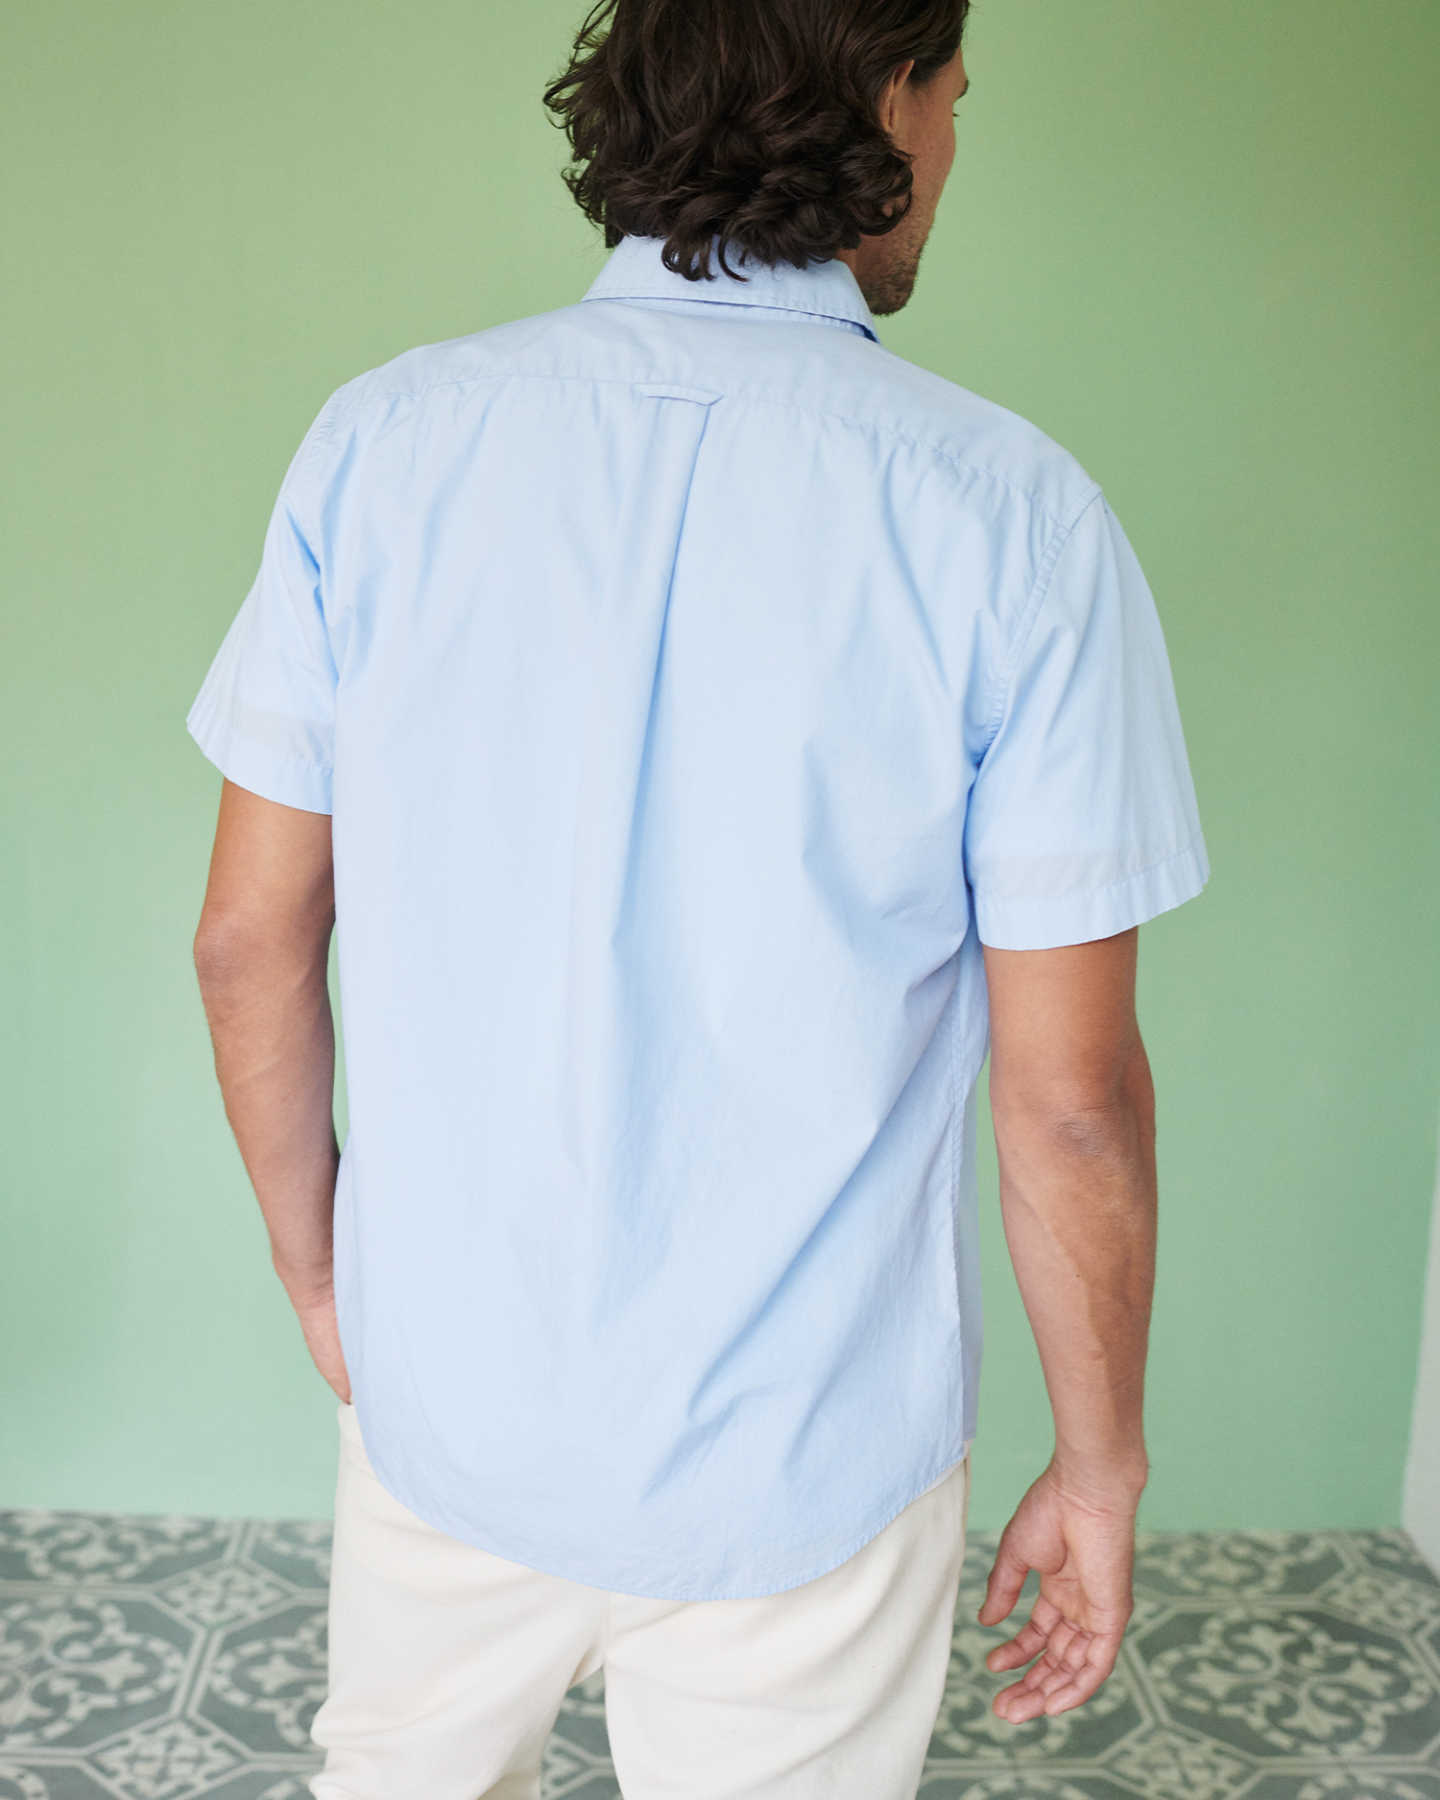 Organic Short Sleeve Stretch Poplin Shirt - Light Blue - 4